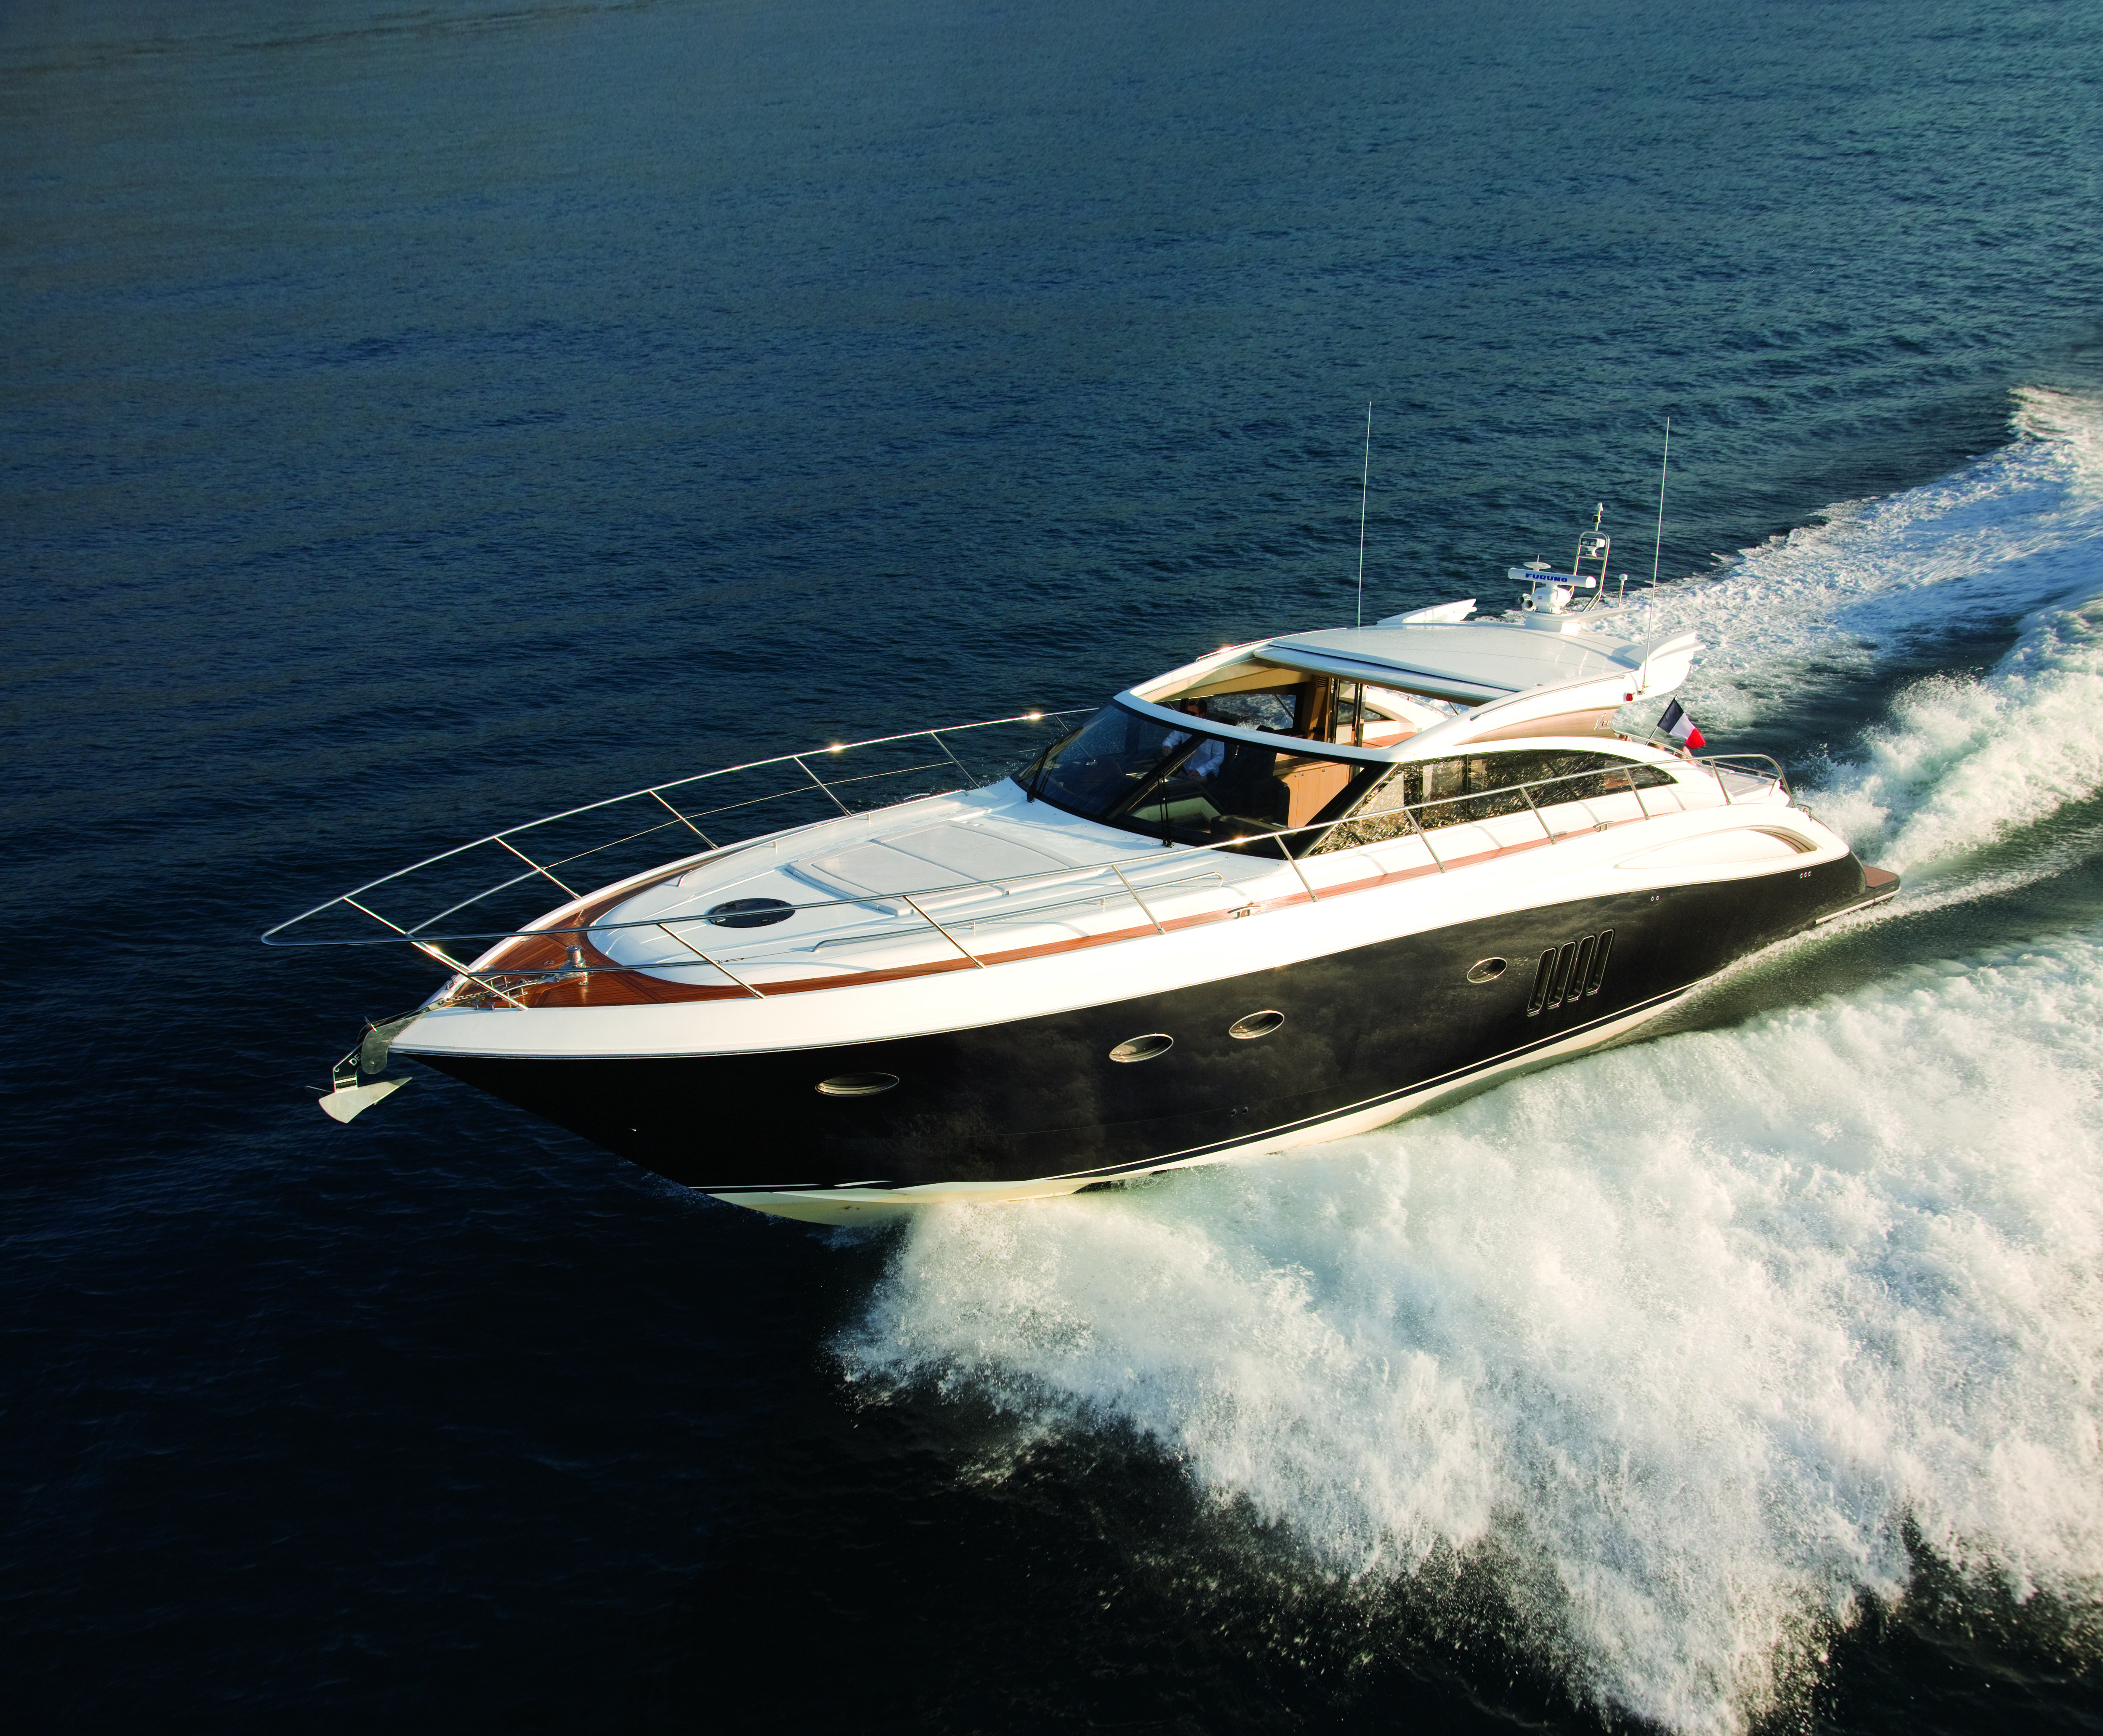 Pictures supplied by Princess Yachts International